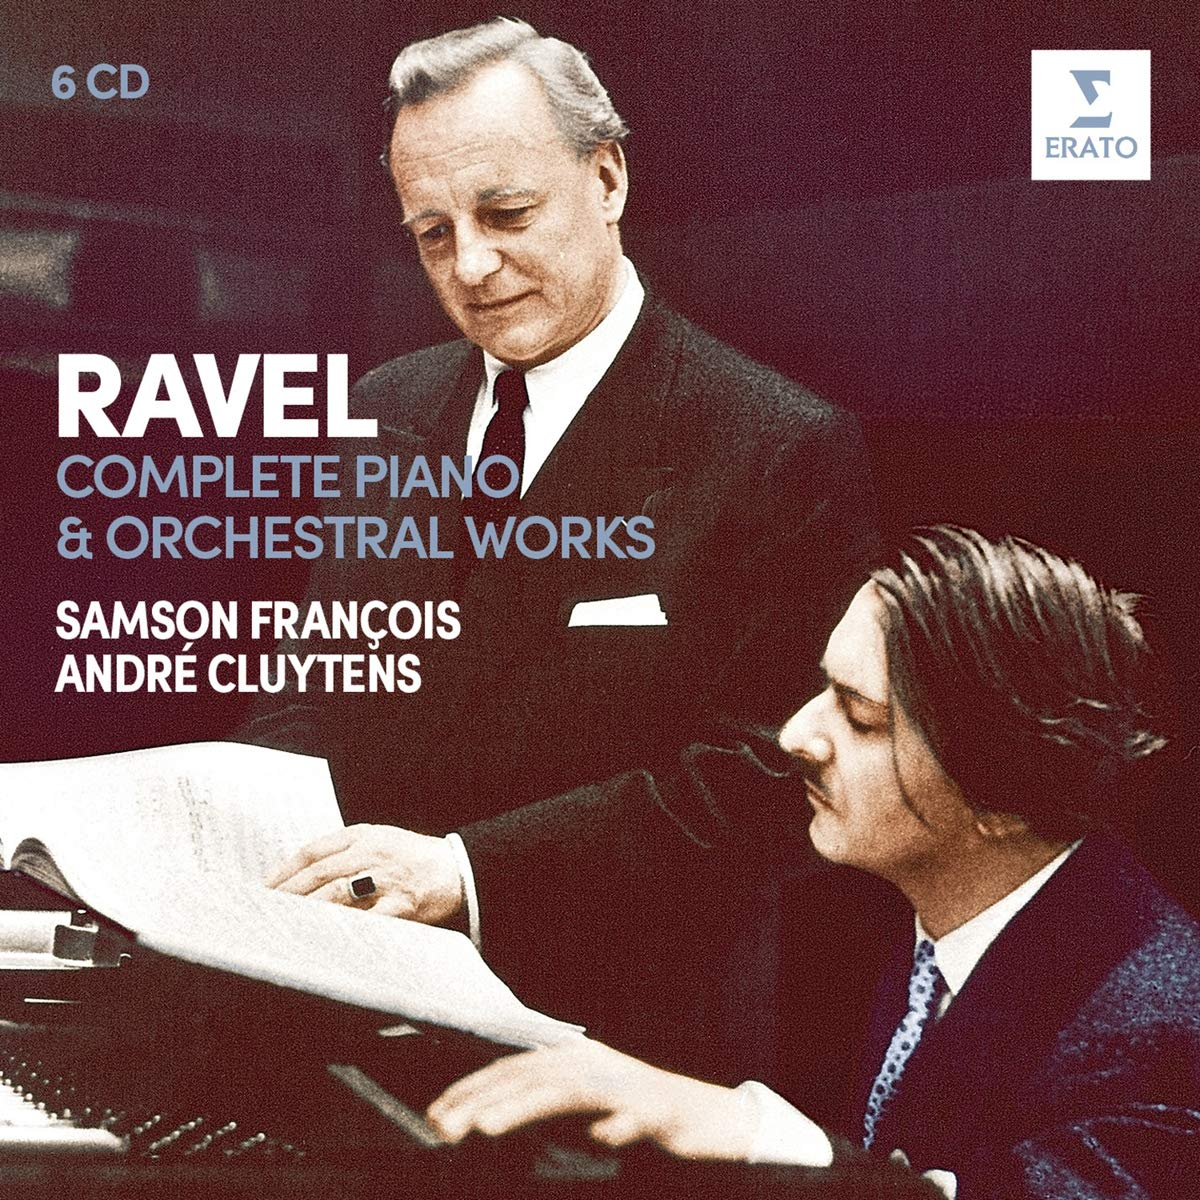 CD : ANDRE CLUYTENS - Ravel: Complete Piano & Orchestral Works (6PC)